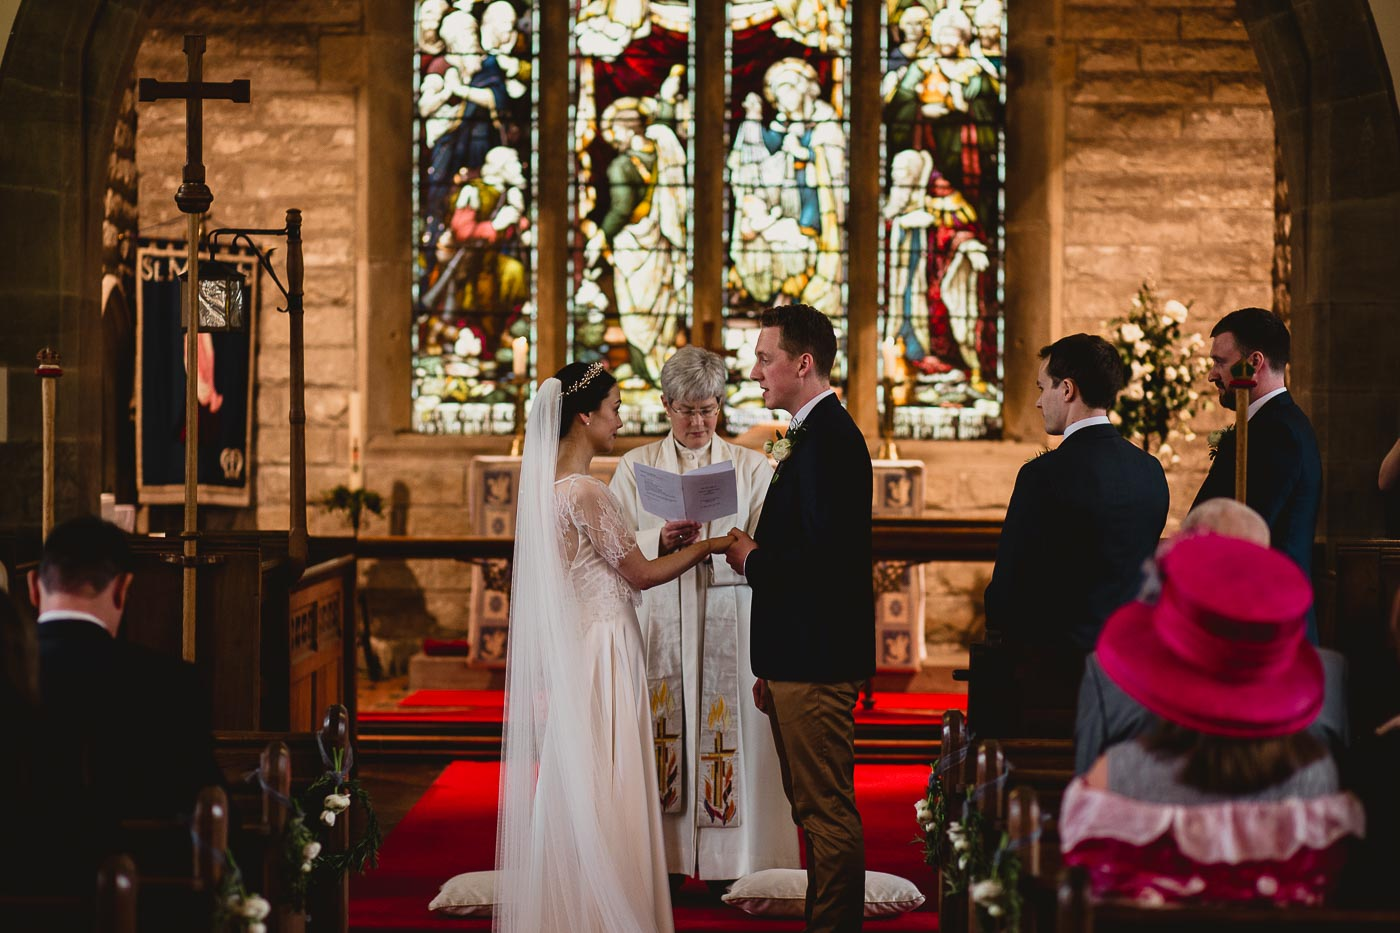 Bride and groom holding hands for wedding vows in church, Relaxed church wedding